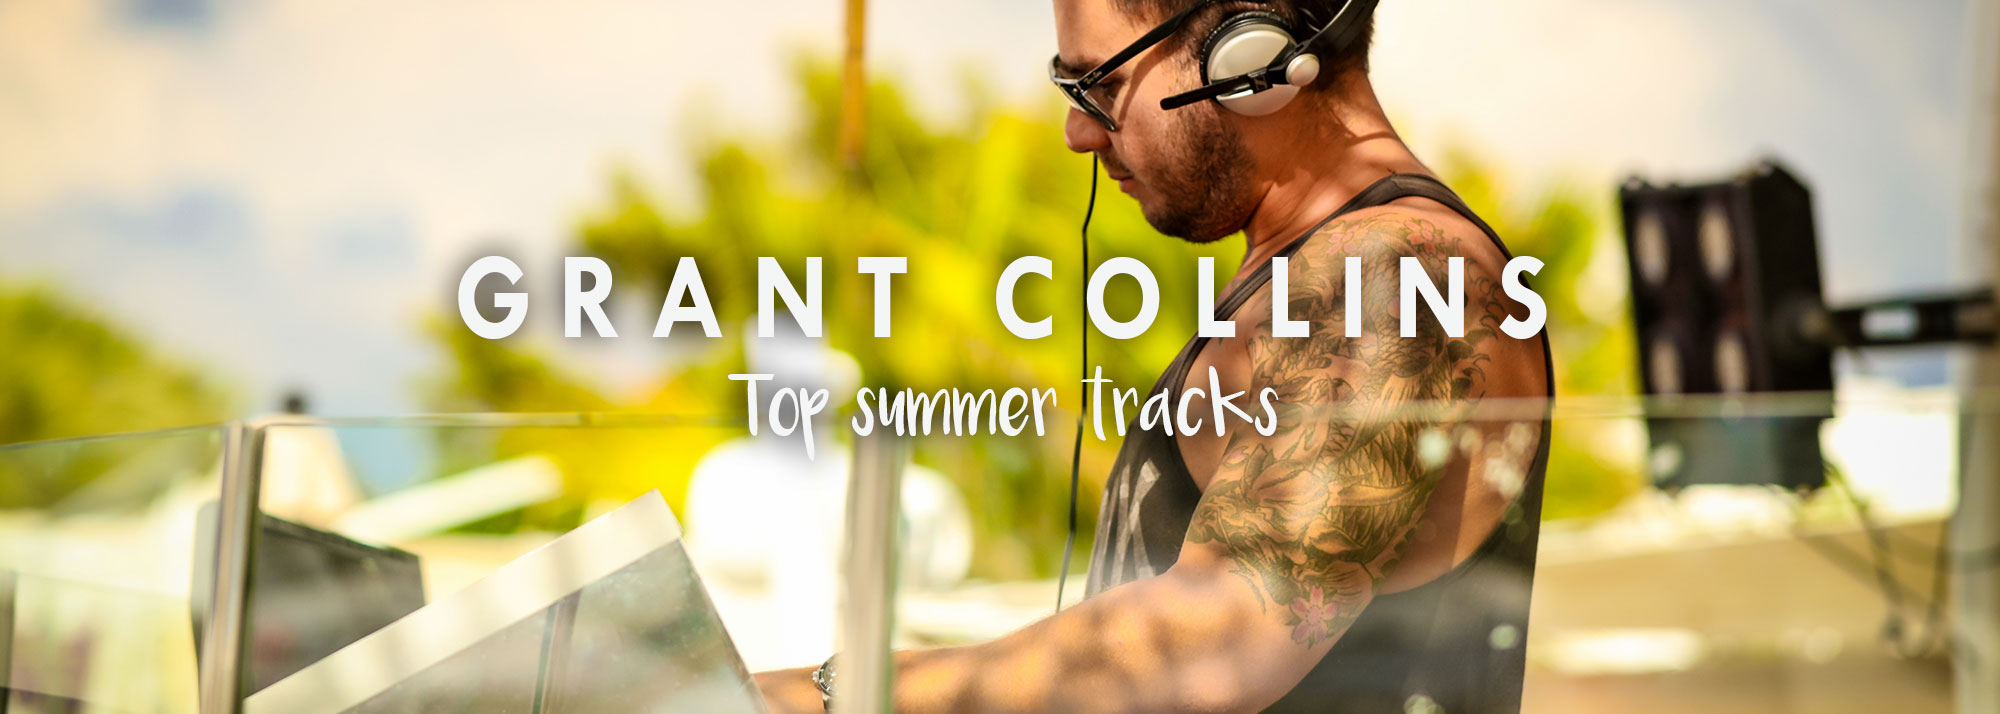 DJ Grant Collins´ End Of Summer Tracks